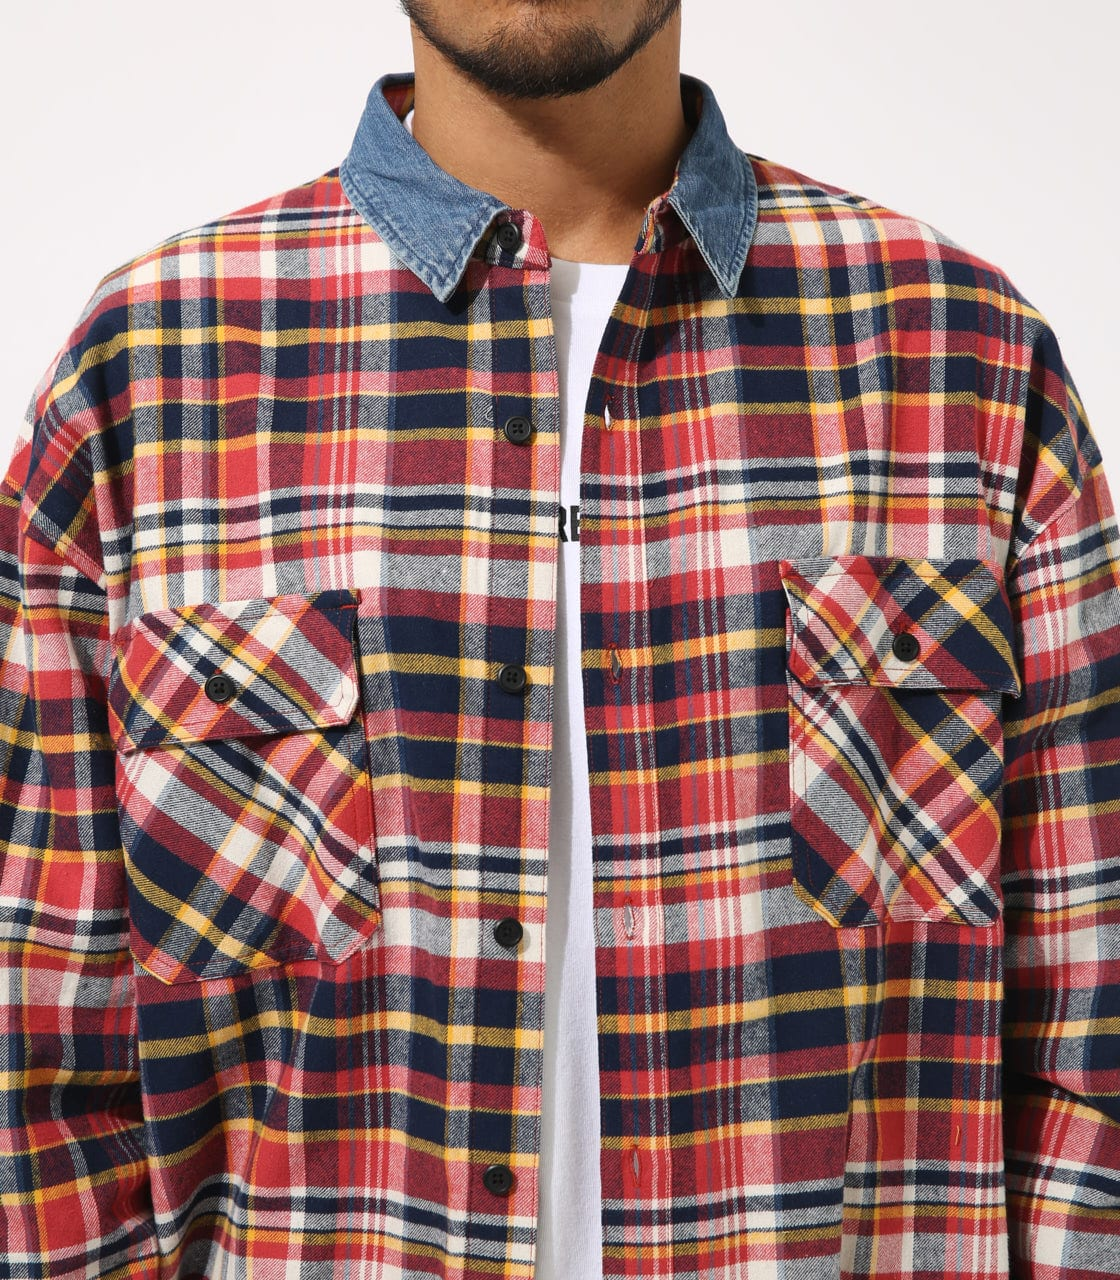 【AZUL BY MOUSSY】DENIM COLLAR BIG CHECK SHIRT 詳細画像 柄RED 8